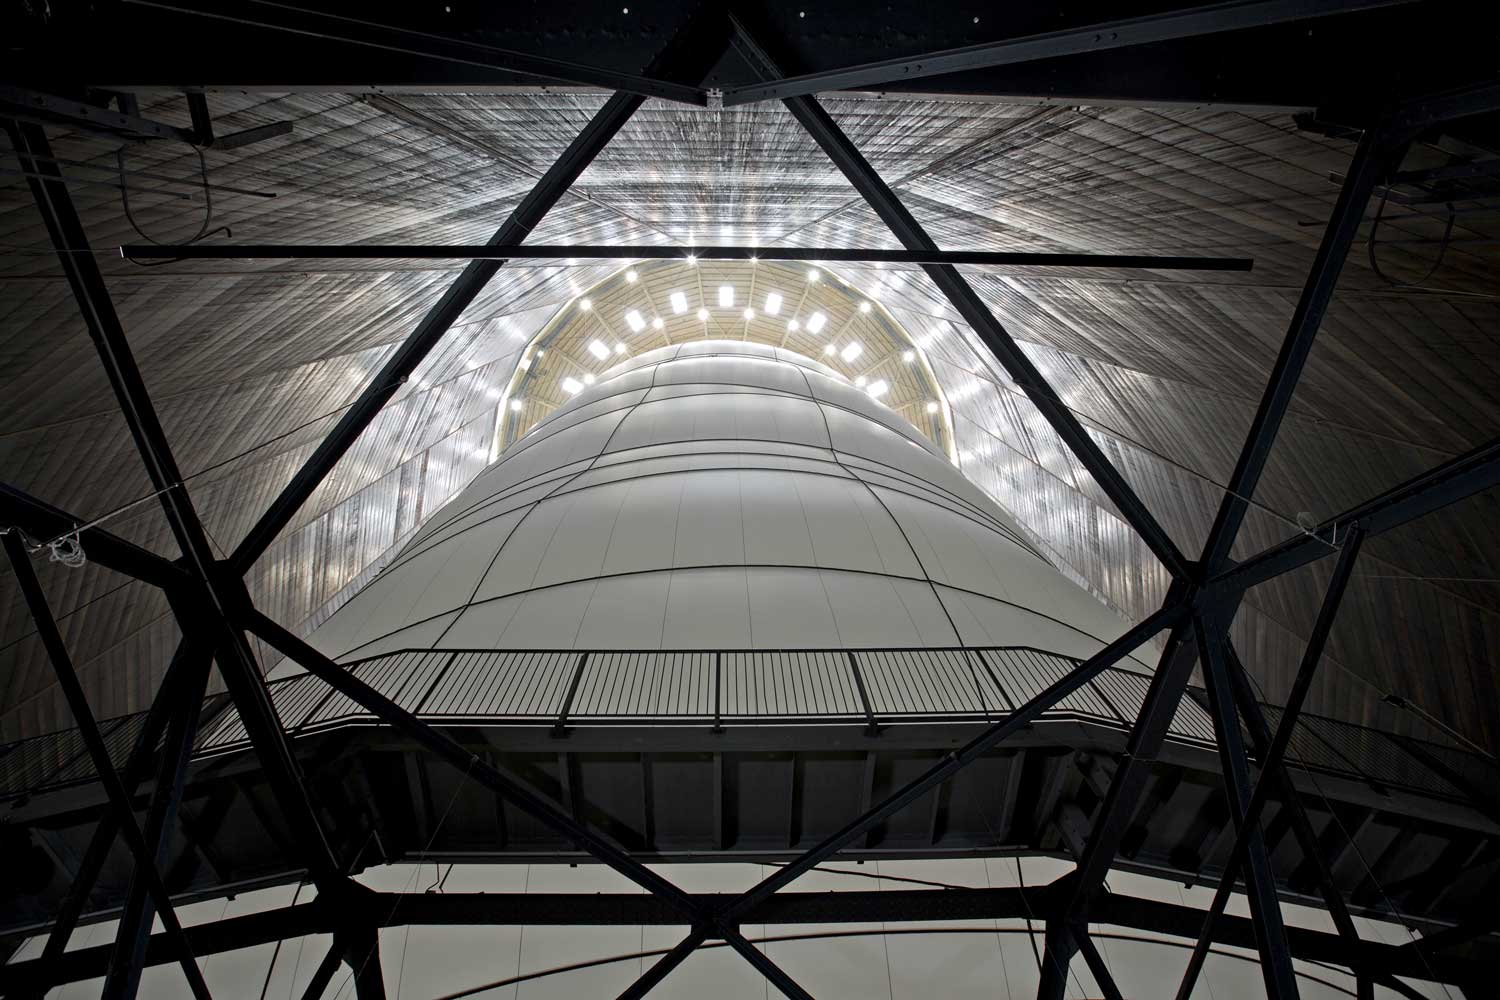 Big Air Package Textile Installation Art by Christo | Yellowtrace